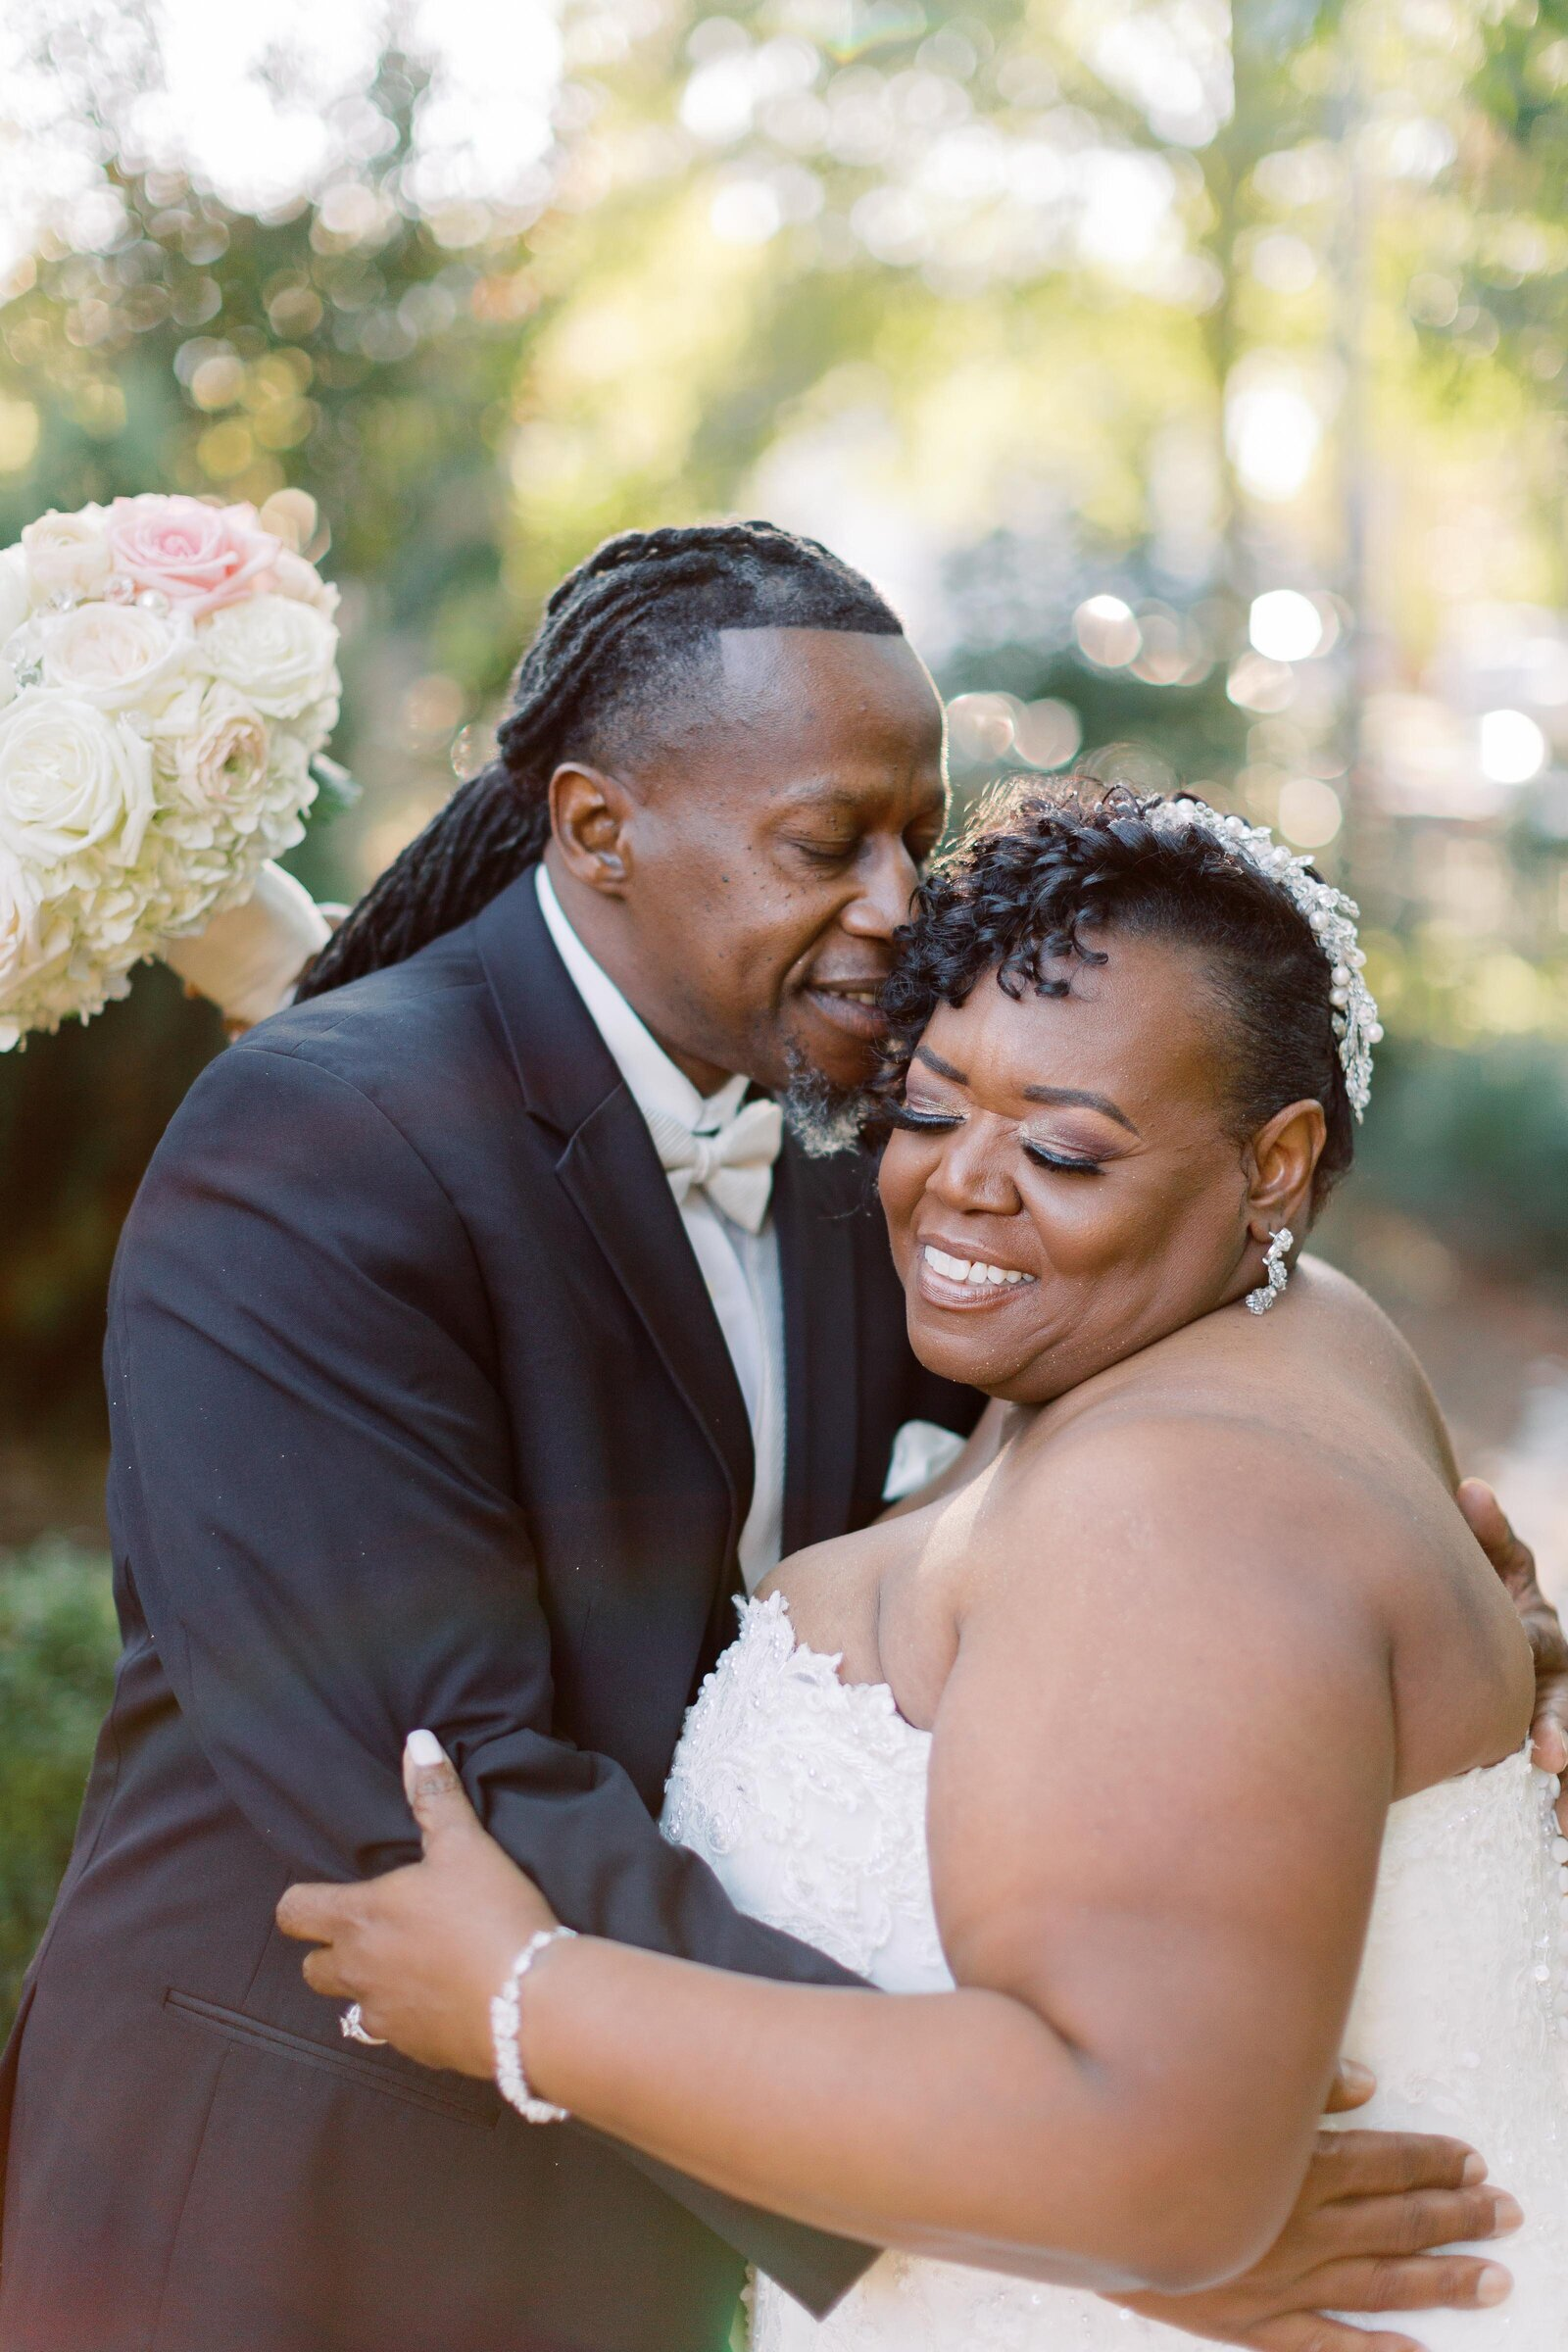 Ritchie Hill North Carolina Wedding Photographer Casie Marie Photography-6